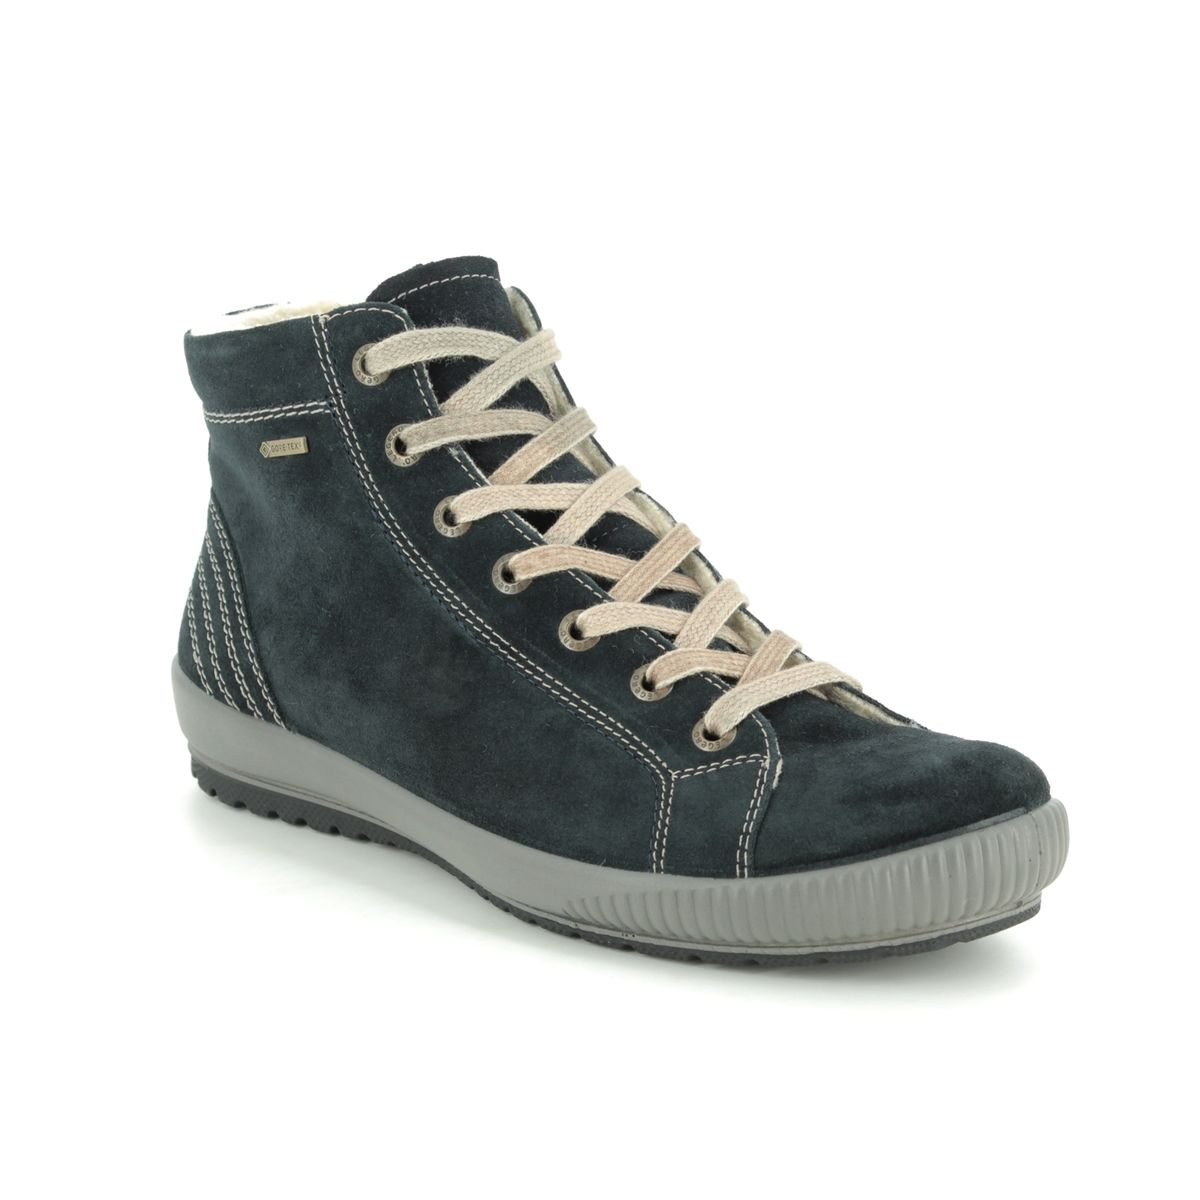 cheap sale cheap for discount hot new products 00619/80 Tanaro Hi Gore-tex at Begg Shoes & Bags